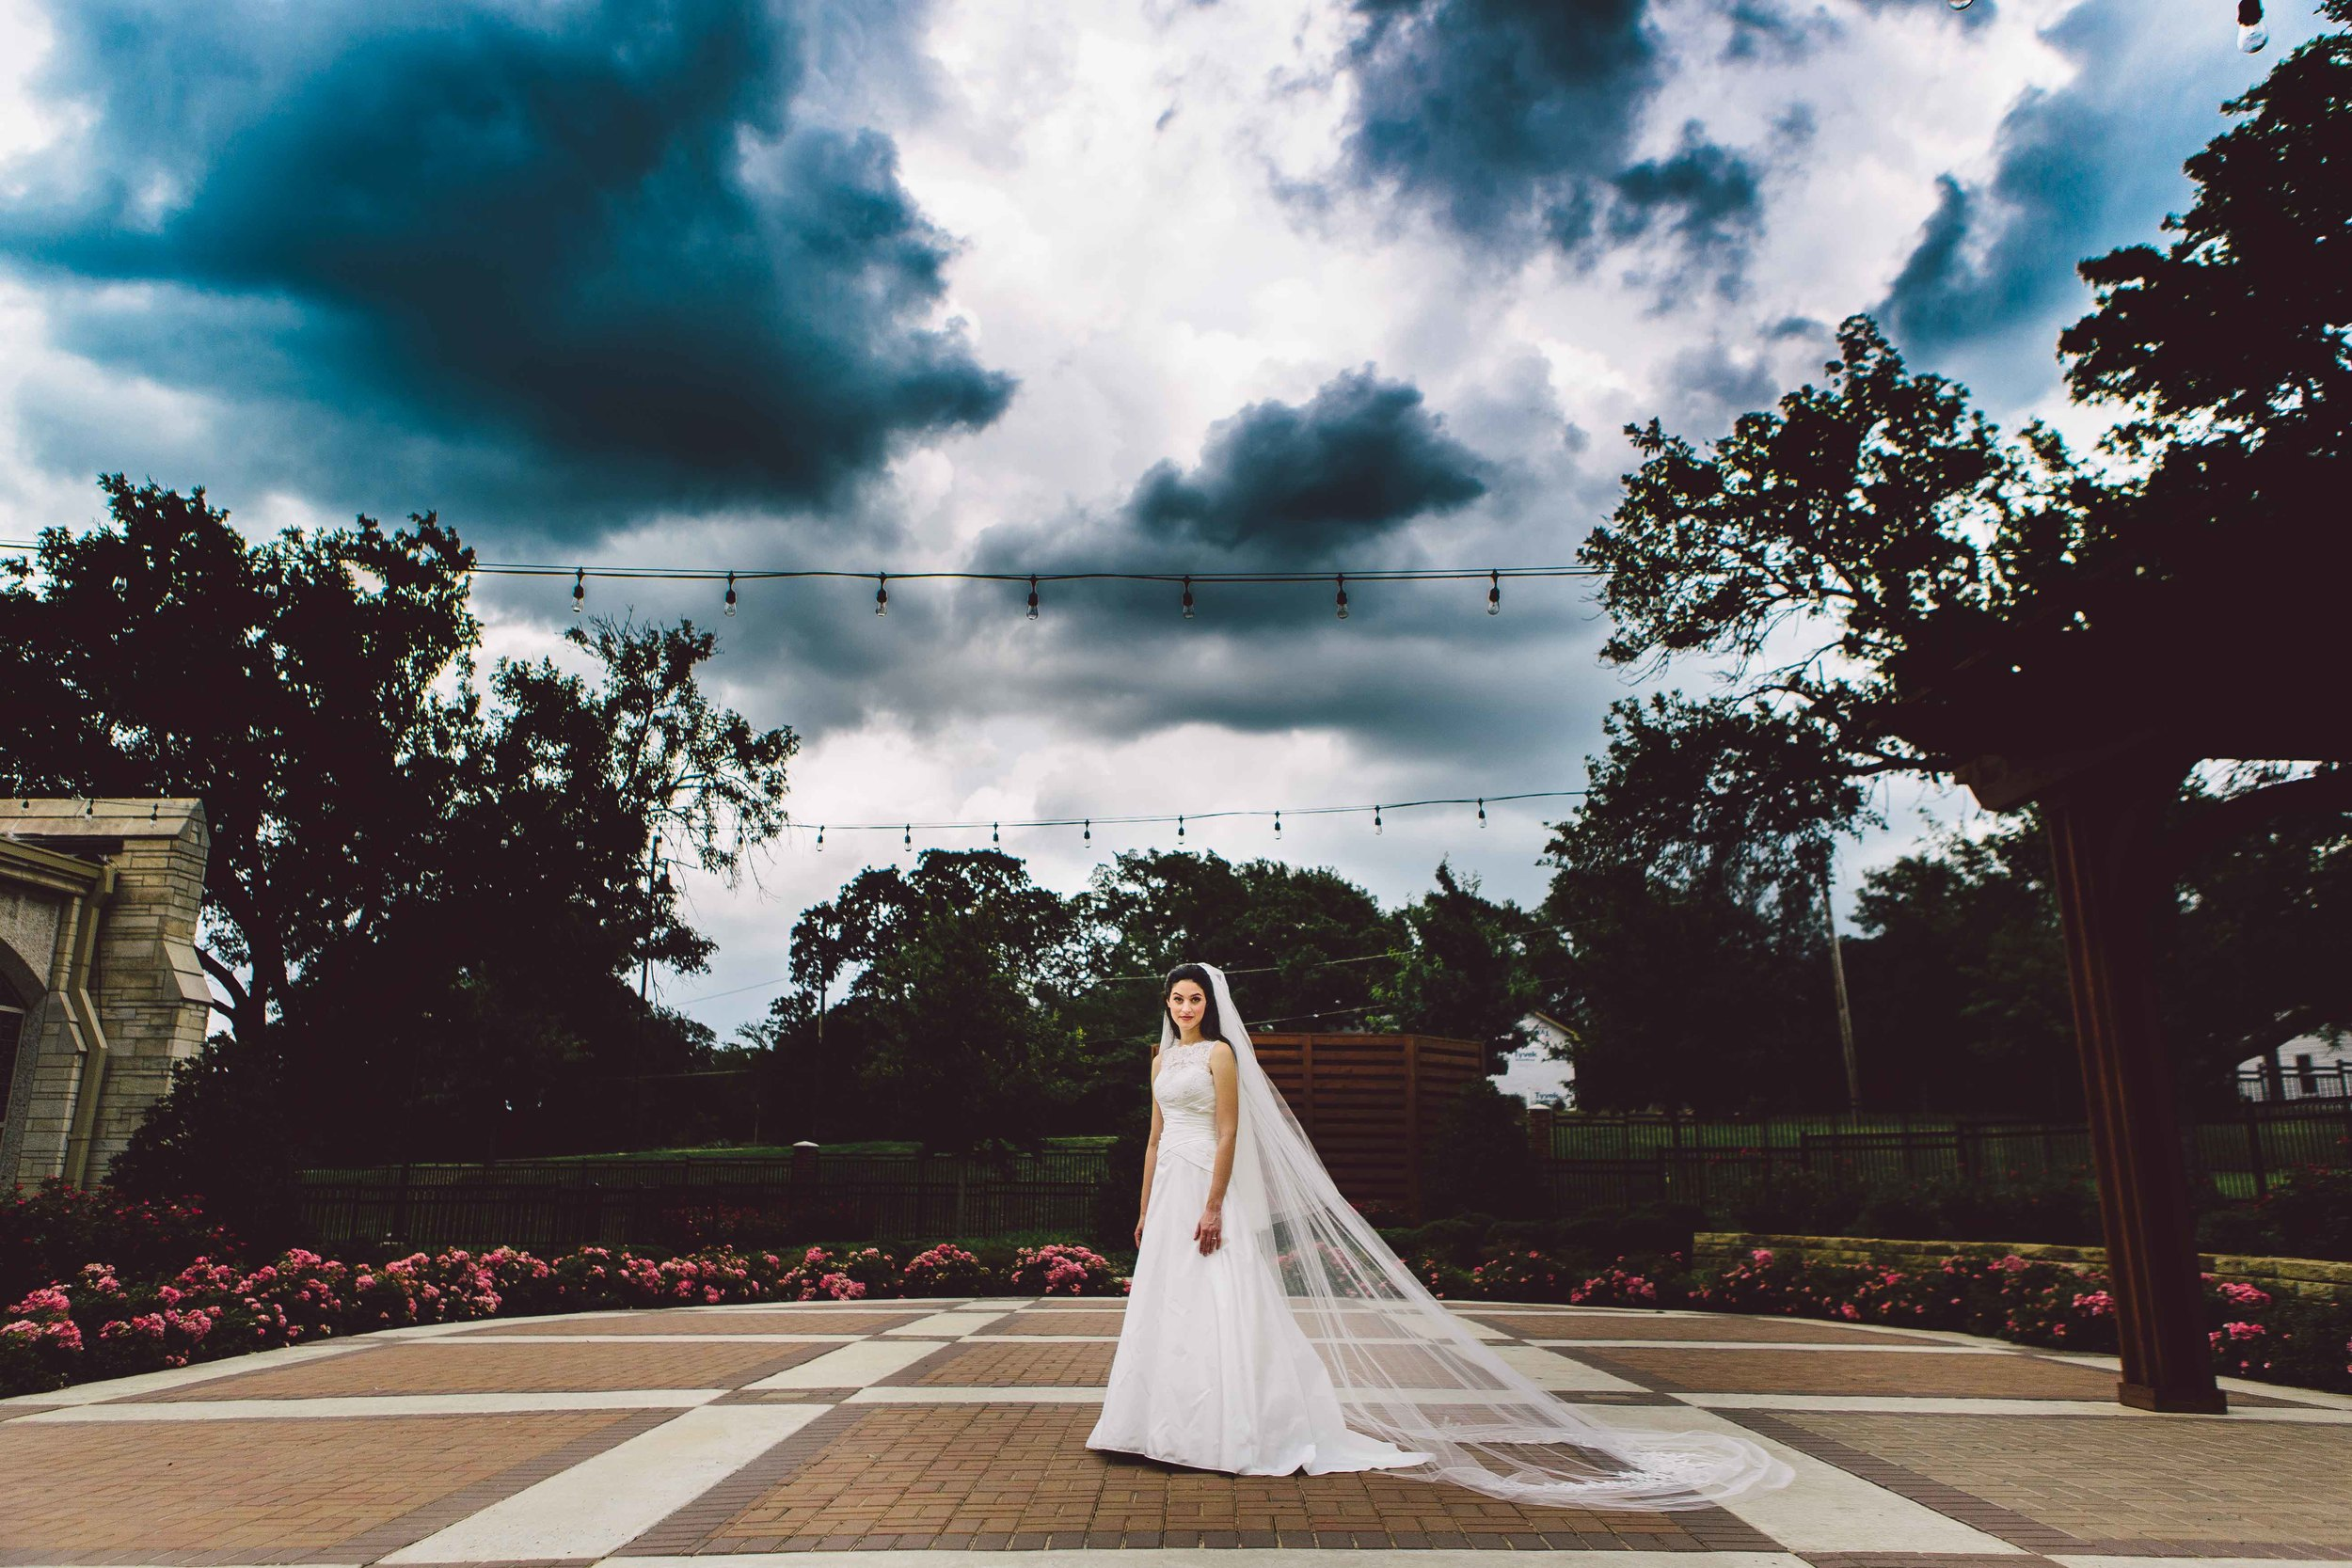 Belltower Bridal Portrait-9.jpg